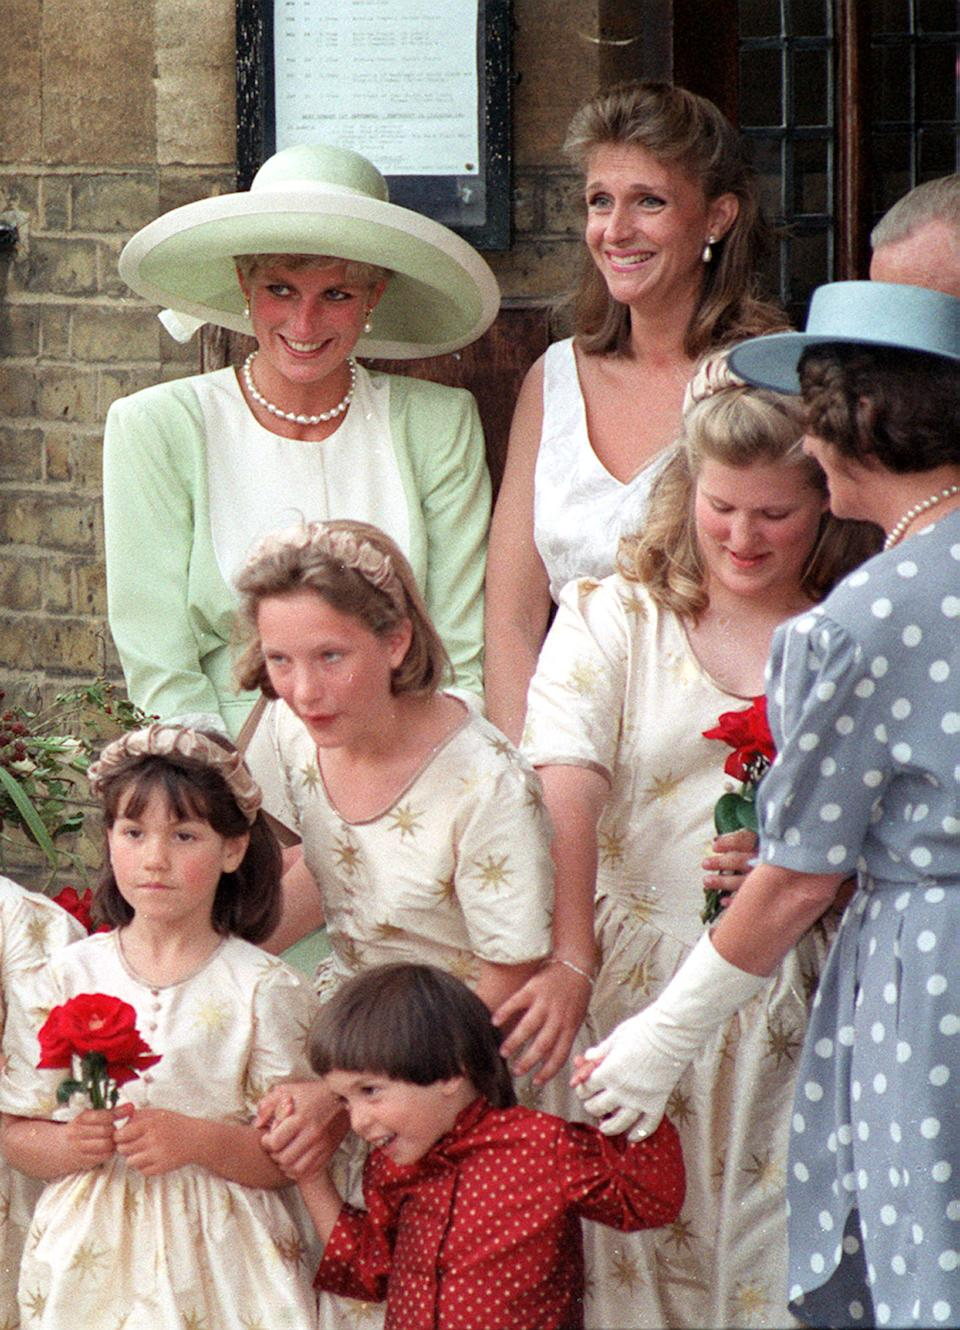 PA NEWS PHOTO 30/8/91  DIANA, THE PRINCESS OF WALES AT THE WEDDING OF HER FORMER FLAT-MATE VIRGINIA PITMAN TO BANKER HENRY CLARKE AT CHRIST CHURCH IN CHELSEA, LONDON. WITH HER IS ANOTHER OF HER OLD FLAT-MATES SOPRANO CAROLYN BARTHOLOMEW   (Photo by Martin Keene - PA Images/PA Images via Getty Images)